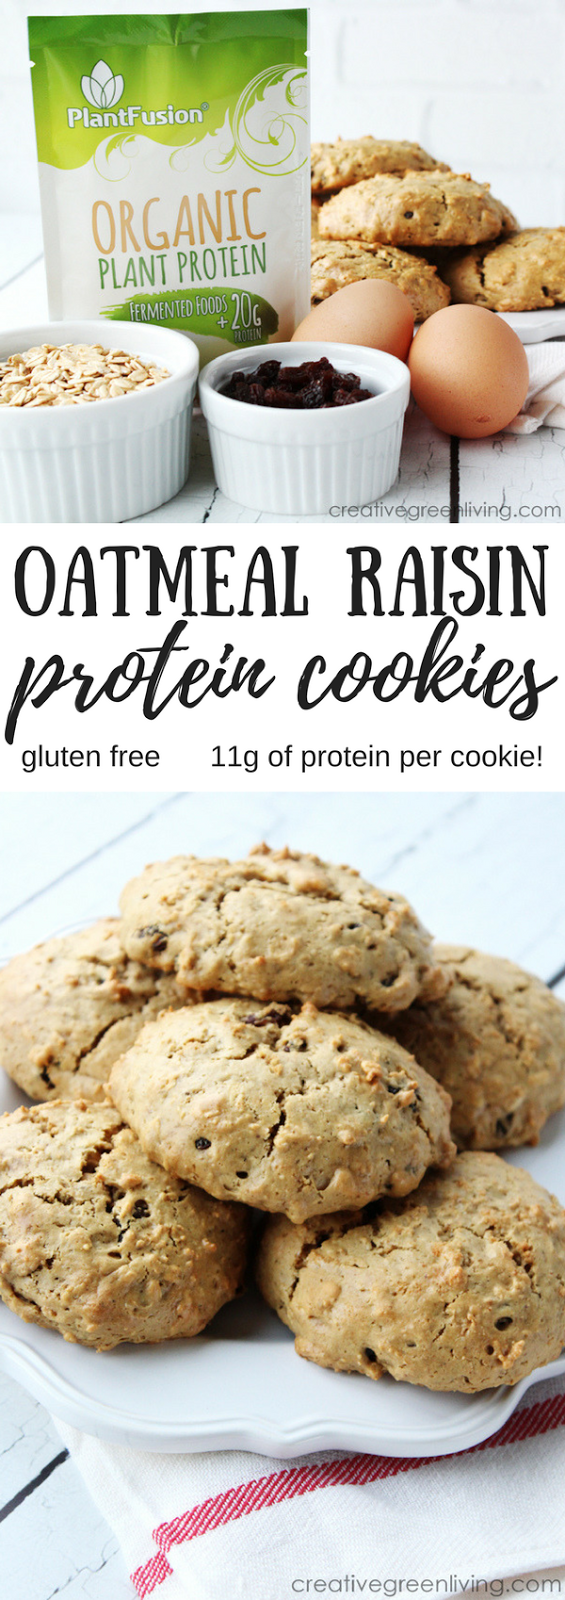 oatmeal raisin protein cookies recipe